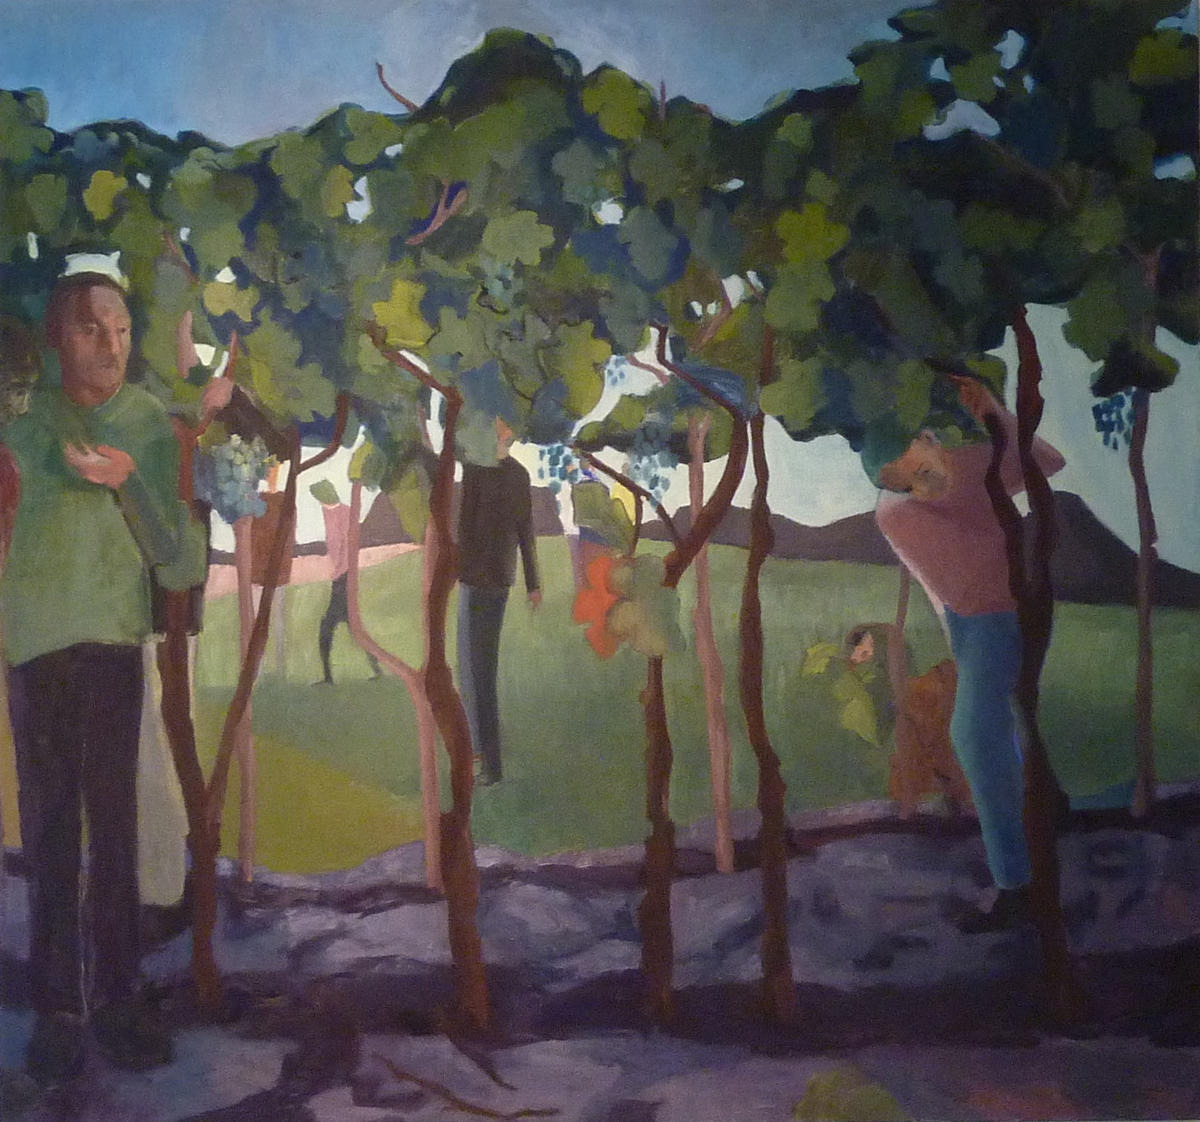 The 12 Spies - Vineyard (2013) 56 x 60, oil on linen by Shany Saar Courtesy the artist